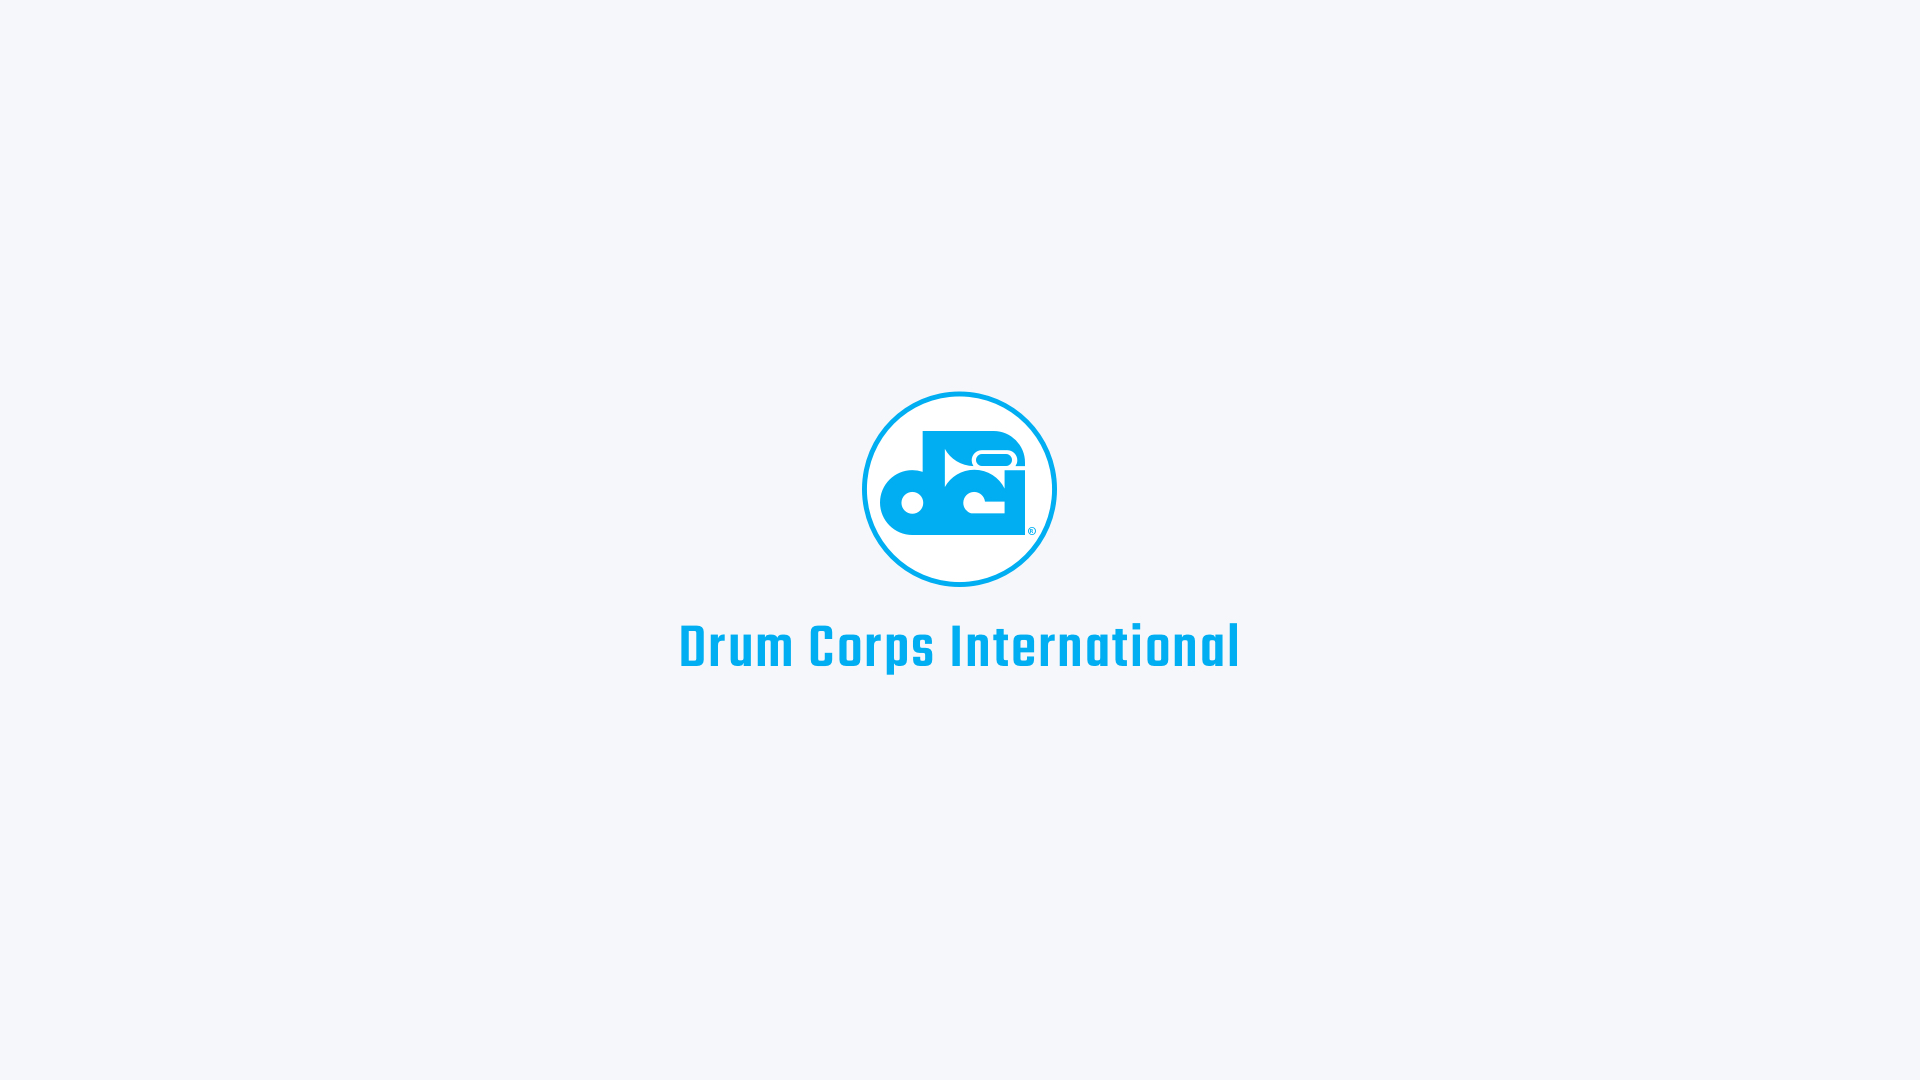 NEW DCI.org feature: Expanded corps information pages